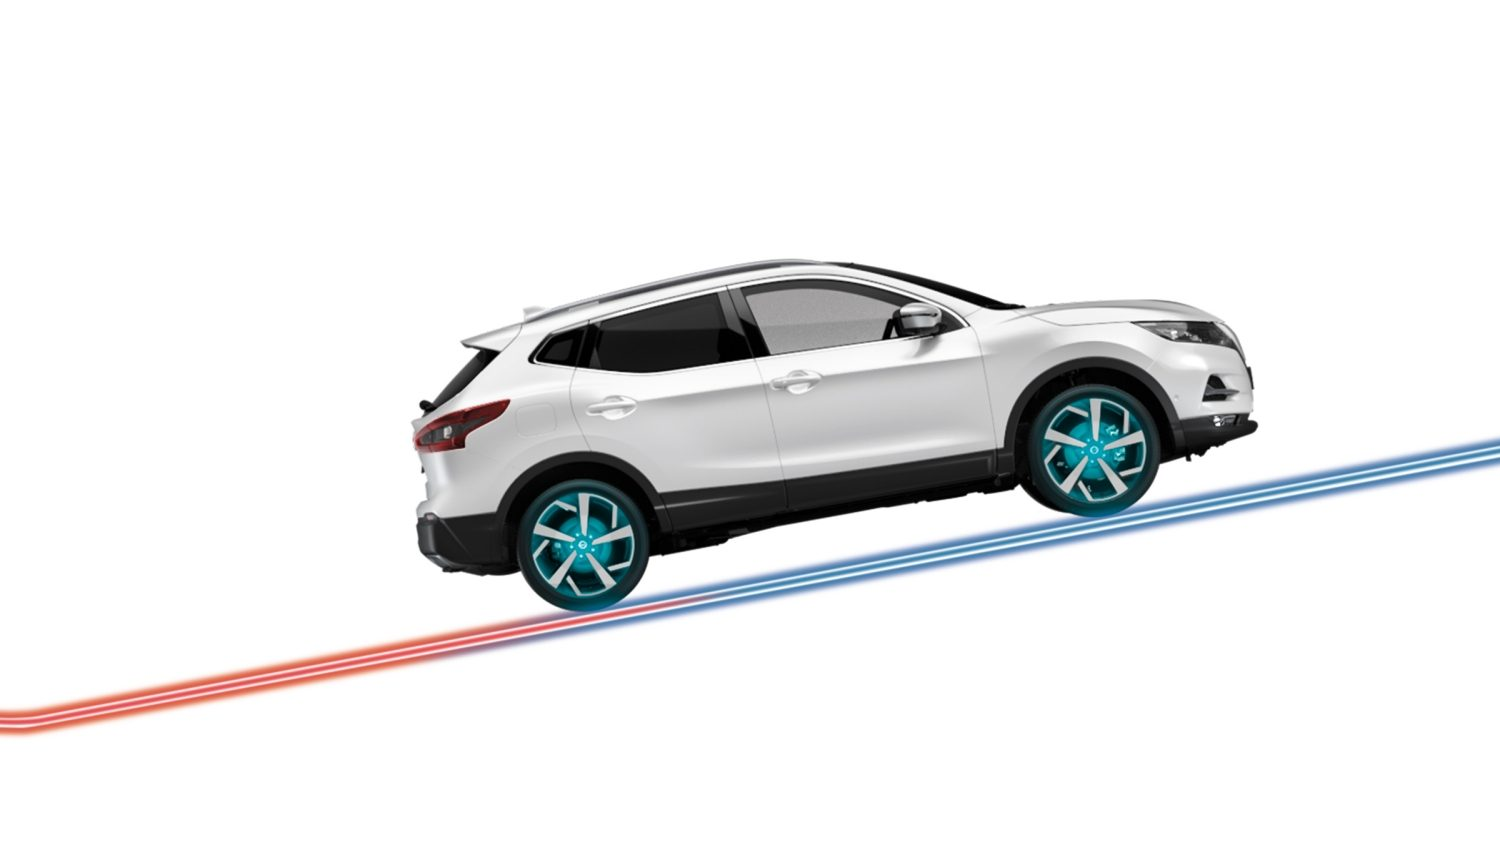 Nissan QASHQAI illustratie stilstaan-assistent